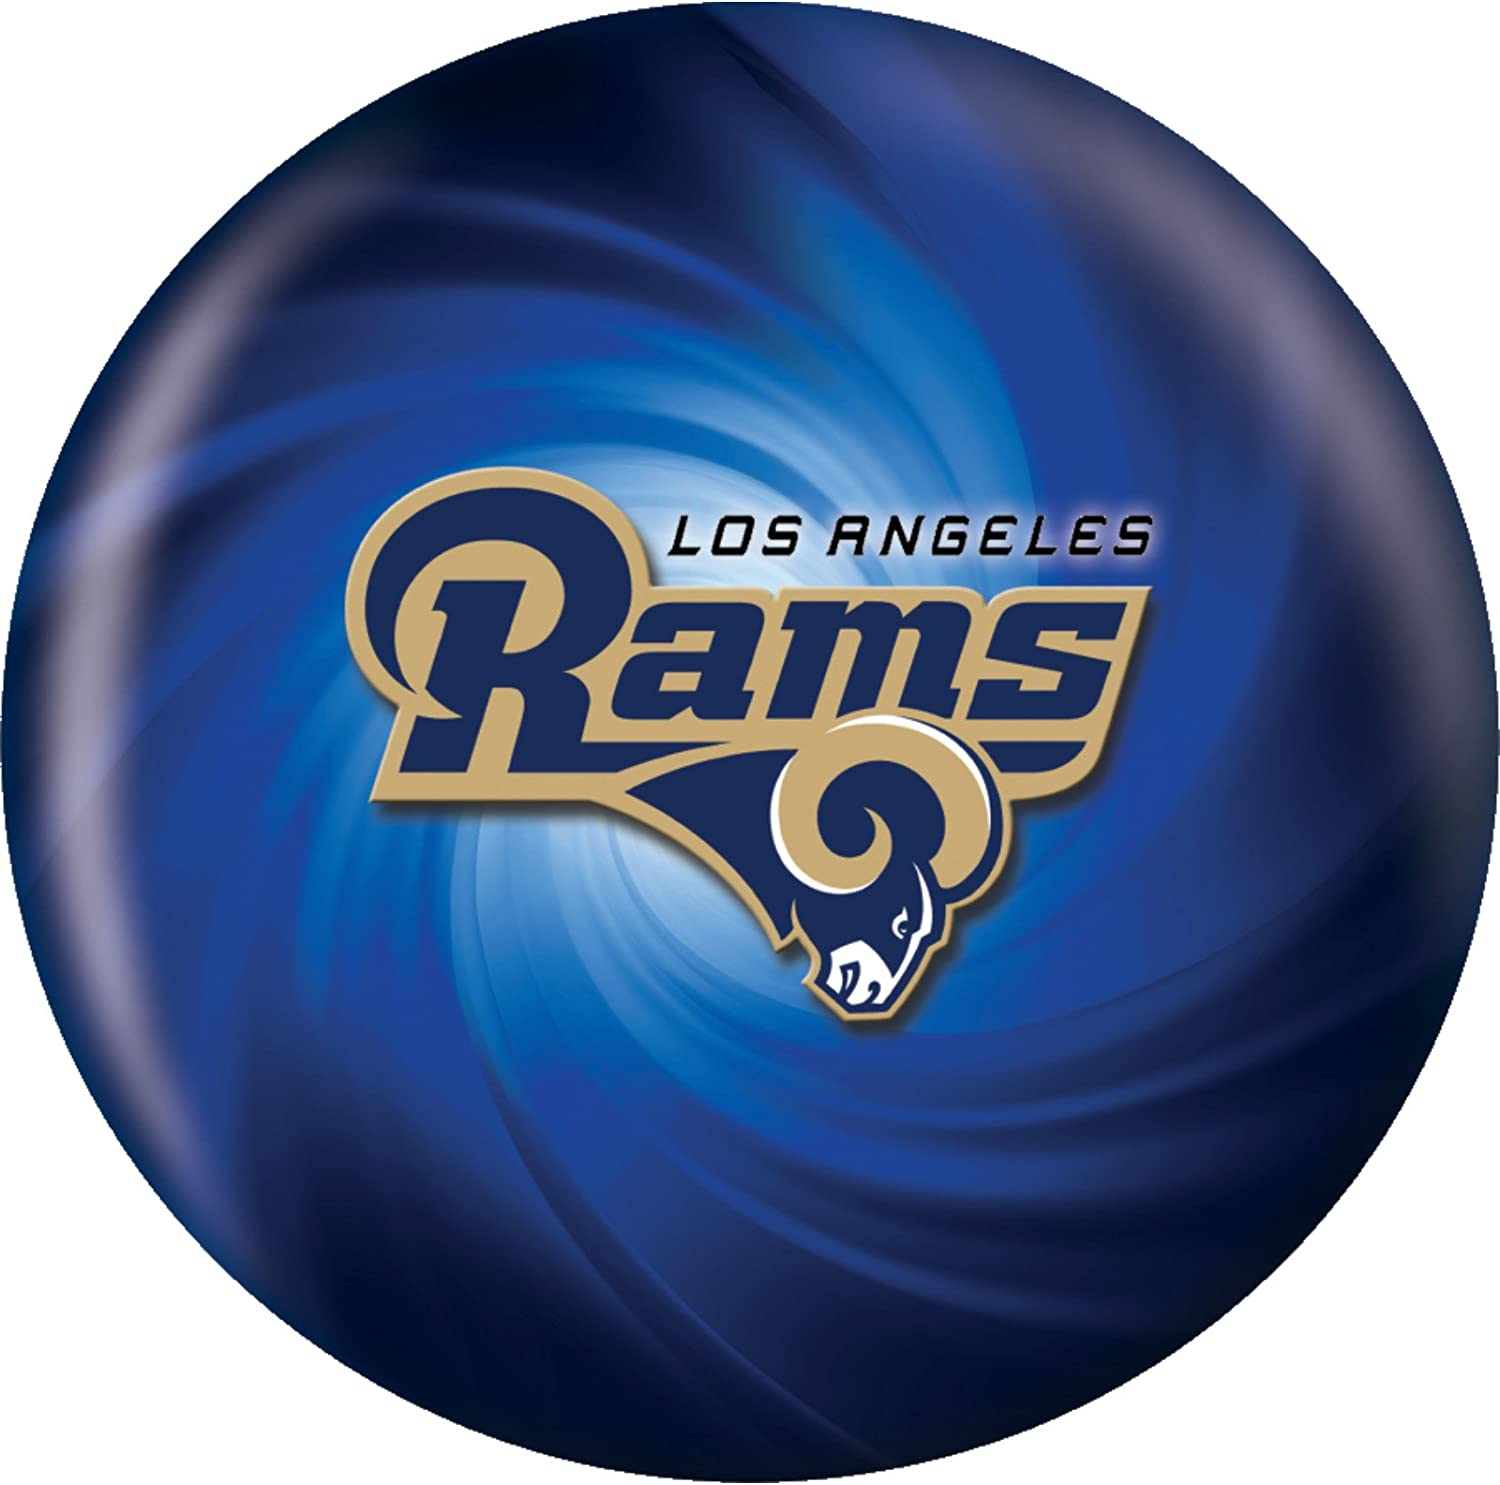 Strikeforce Japan Maker New Bowling Ranking integrated 1st place Officially Licensed NFL Rams Und Los Angeles